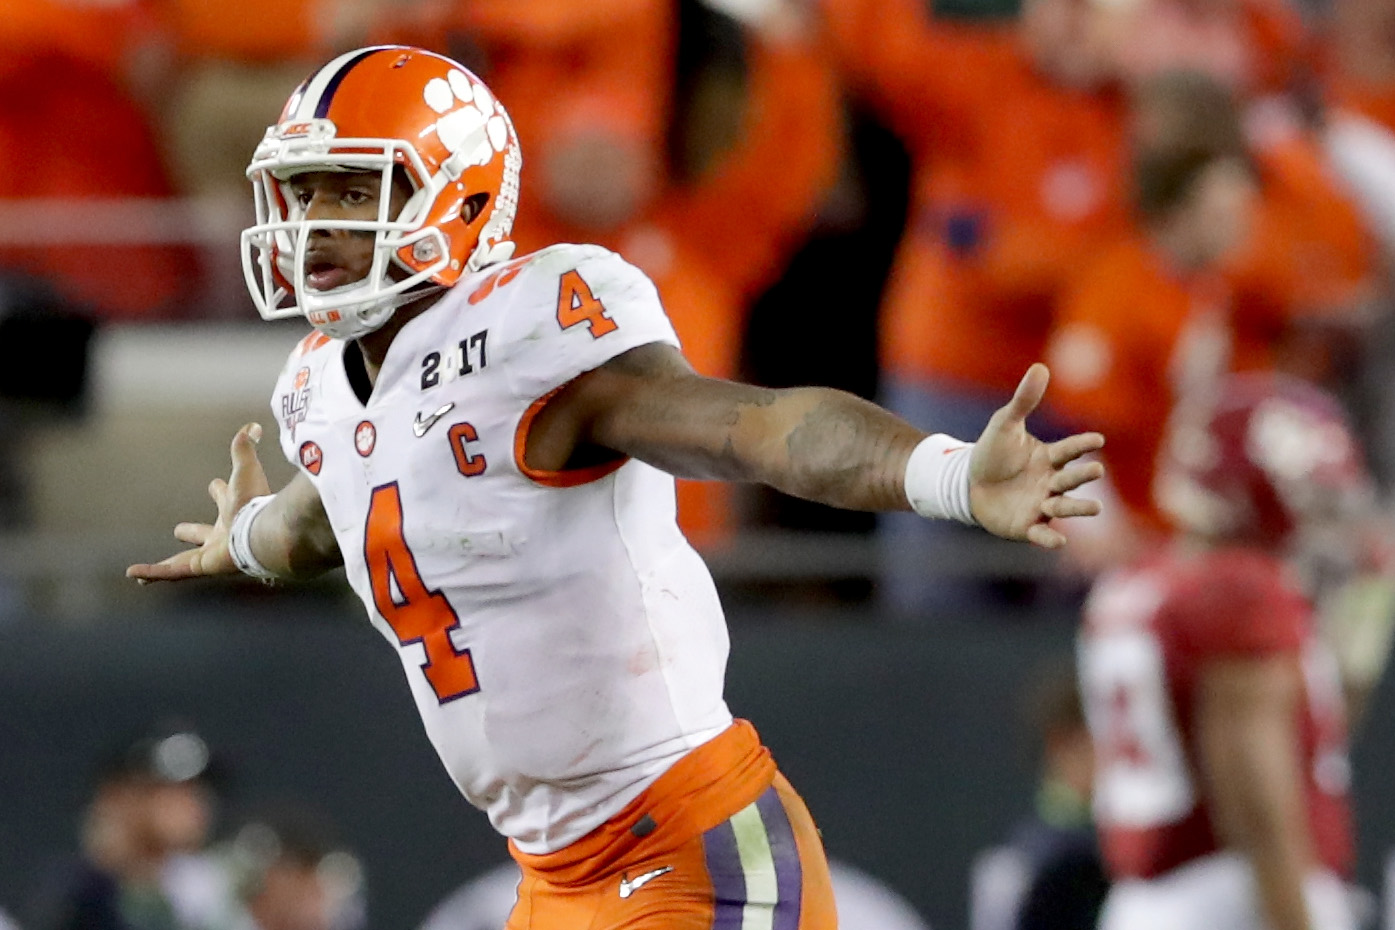 Quarterback Deshaun Watson of the Clemson Tigers celebrates after throwing a 2-yard game-winning touchdown pass during the fourth quarter against the Alabama Crimson Tide to win the 2017 College Football Playoff National Championship Game. (Photo by Streeter Lecka/Getty Images)